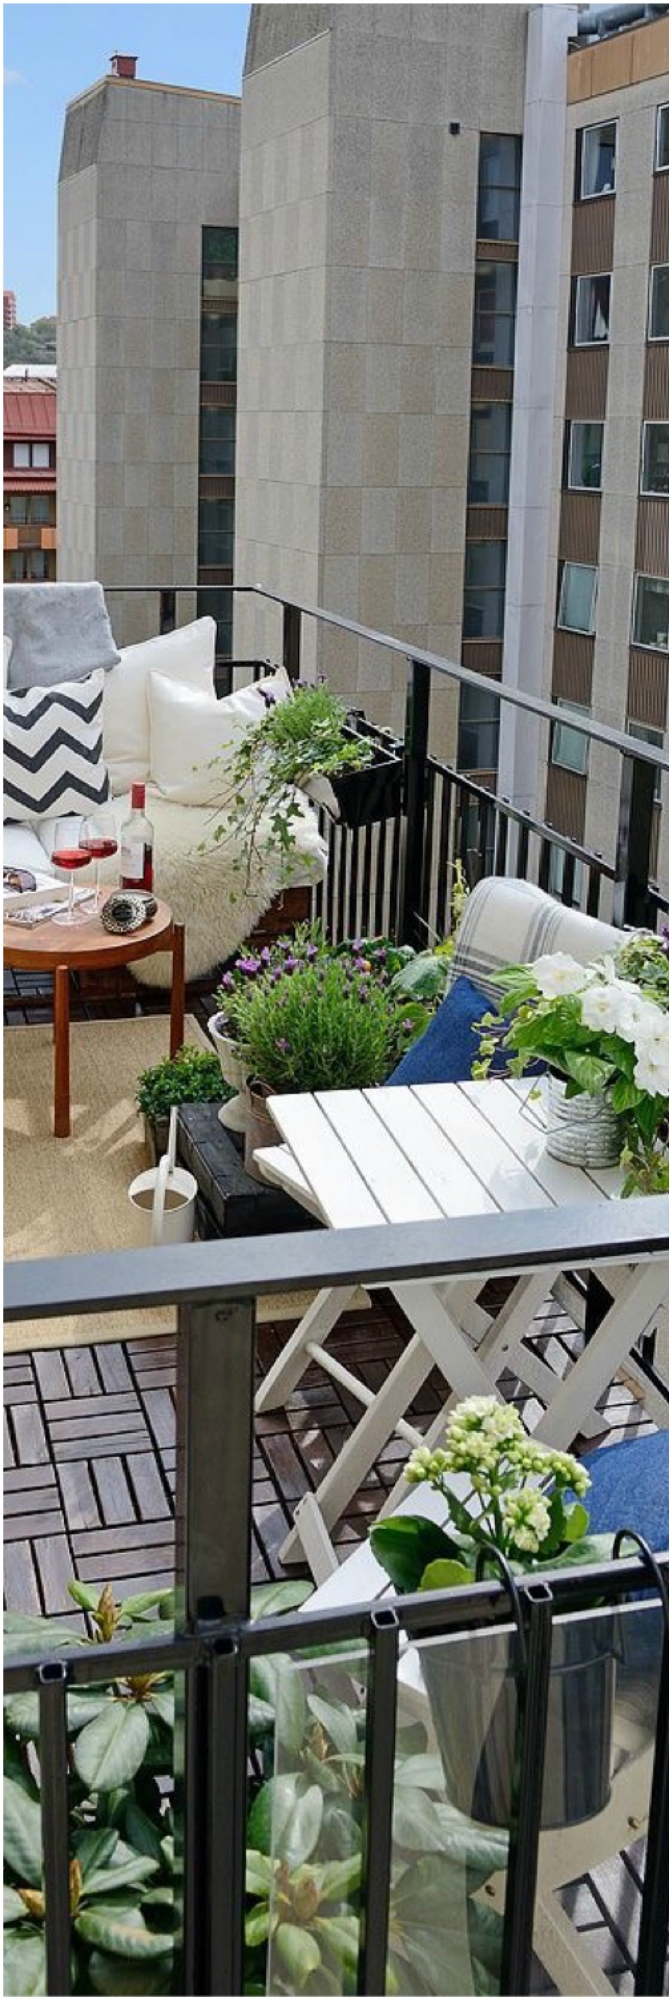 Small Balcony Garden With Sufficient Seating Area